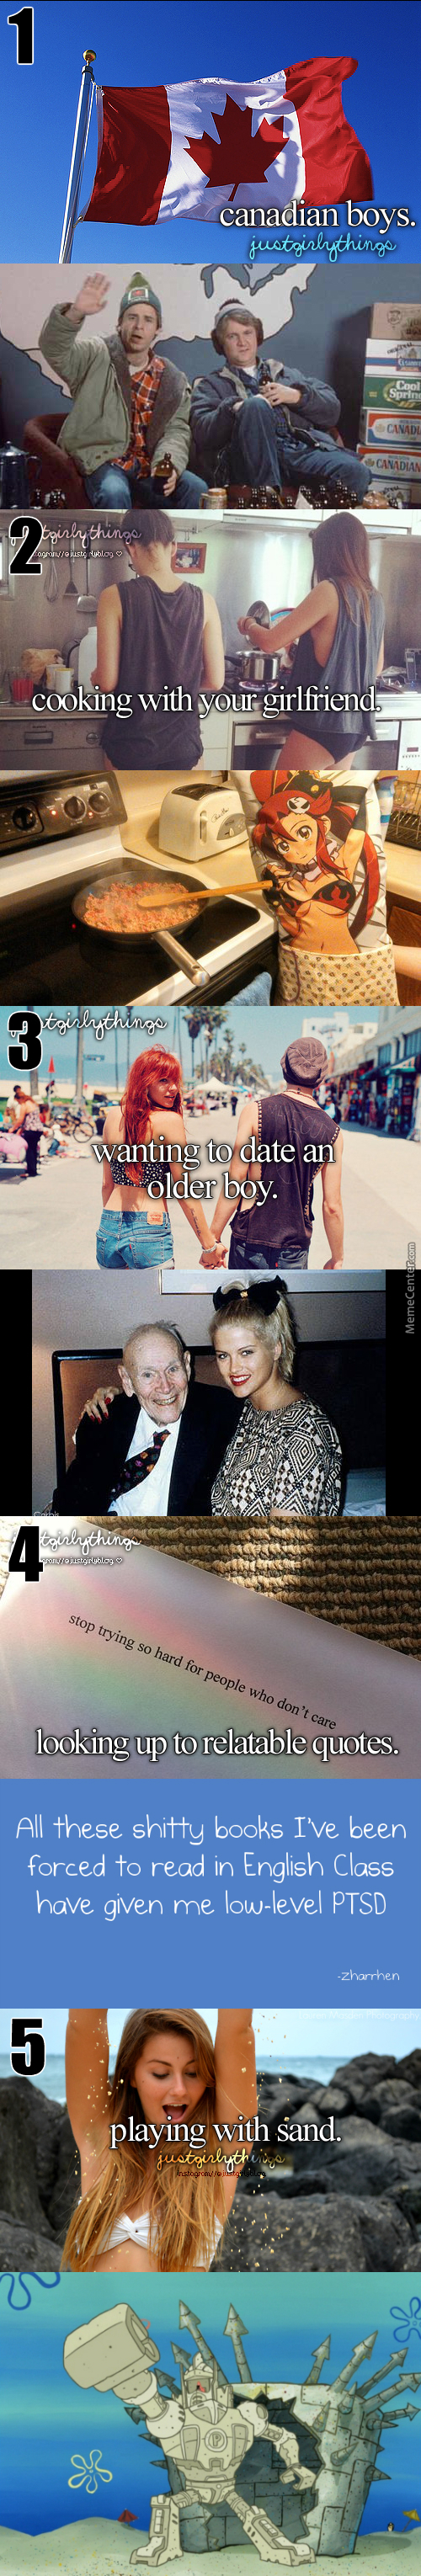 Justgirlythings Compilation 22: Electric Boogaloo 2